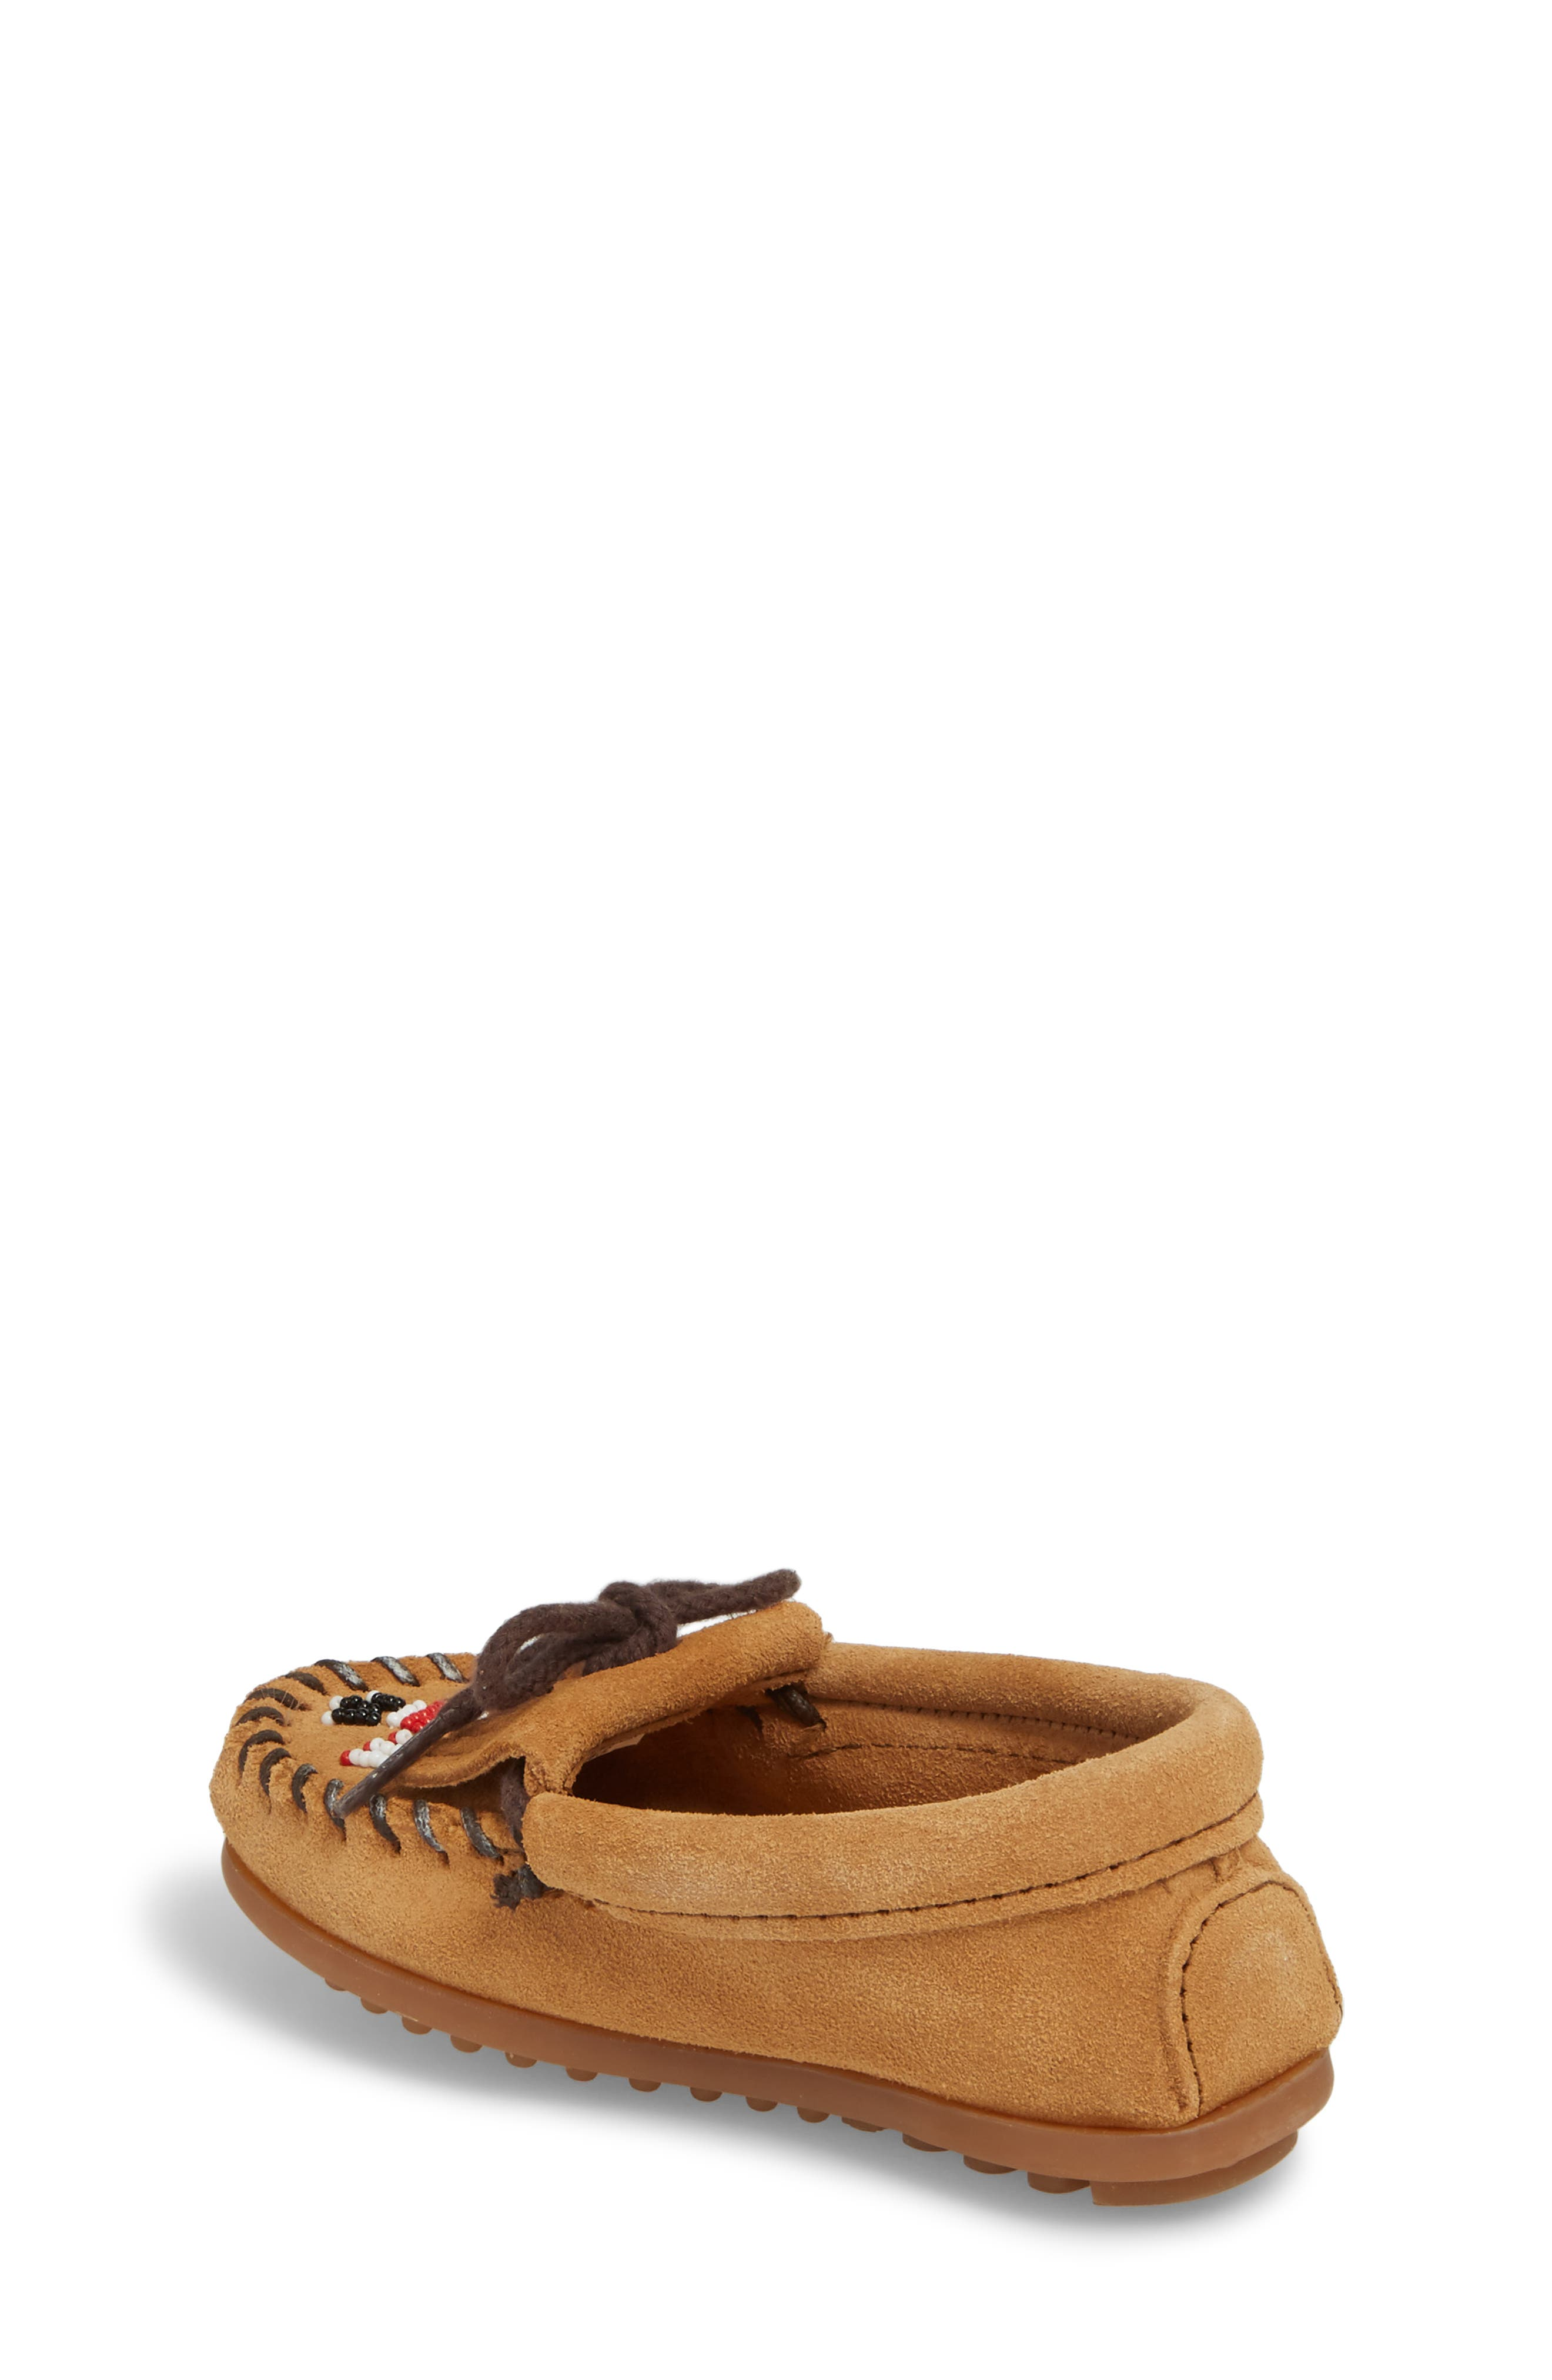 'Thunderbird' Moccasin,                             Alternate thumbnail 2, color,                             Taupe